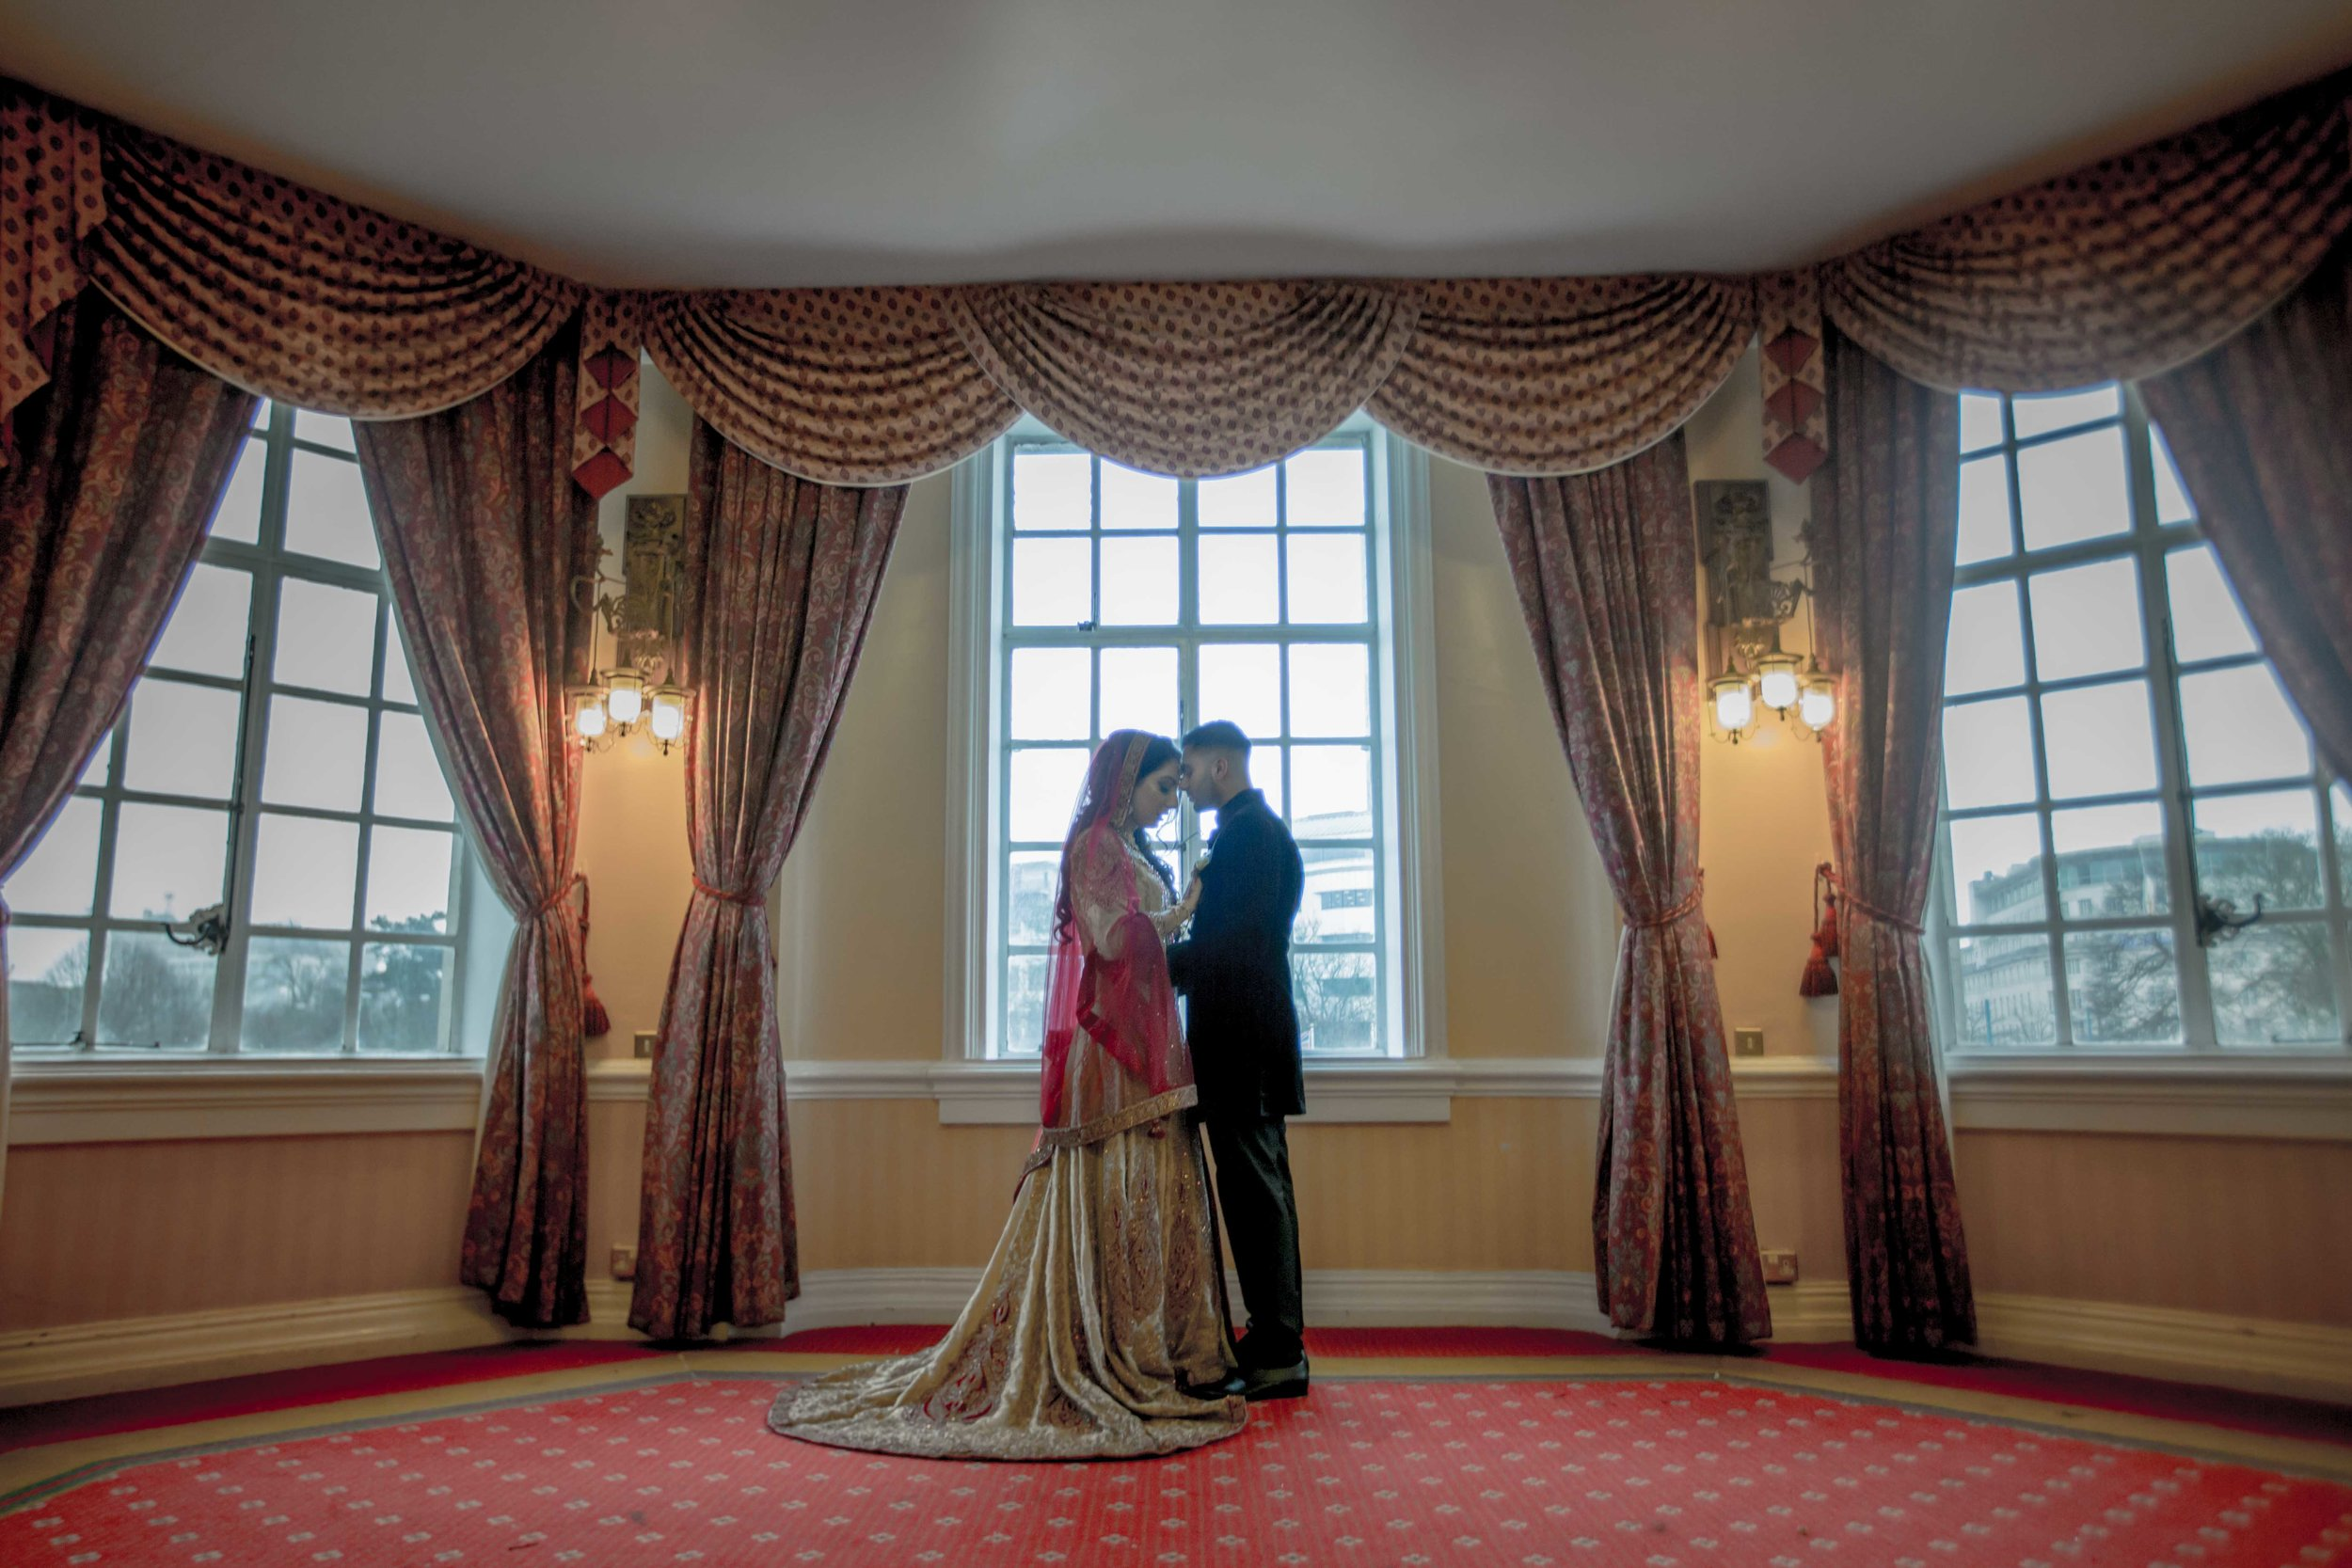 Female-asian-wedding-photographer-Cardiff-City-Hall-natalia-smith-photography-35.jpg